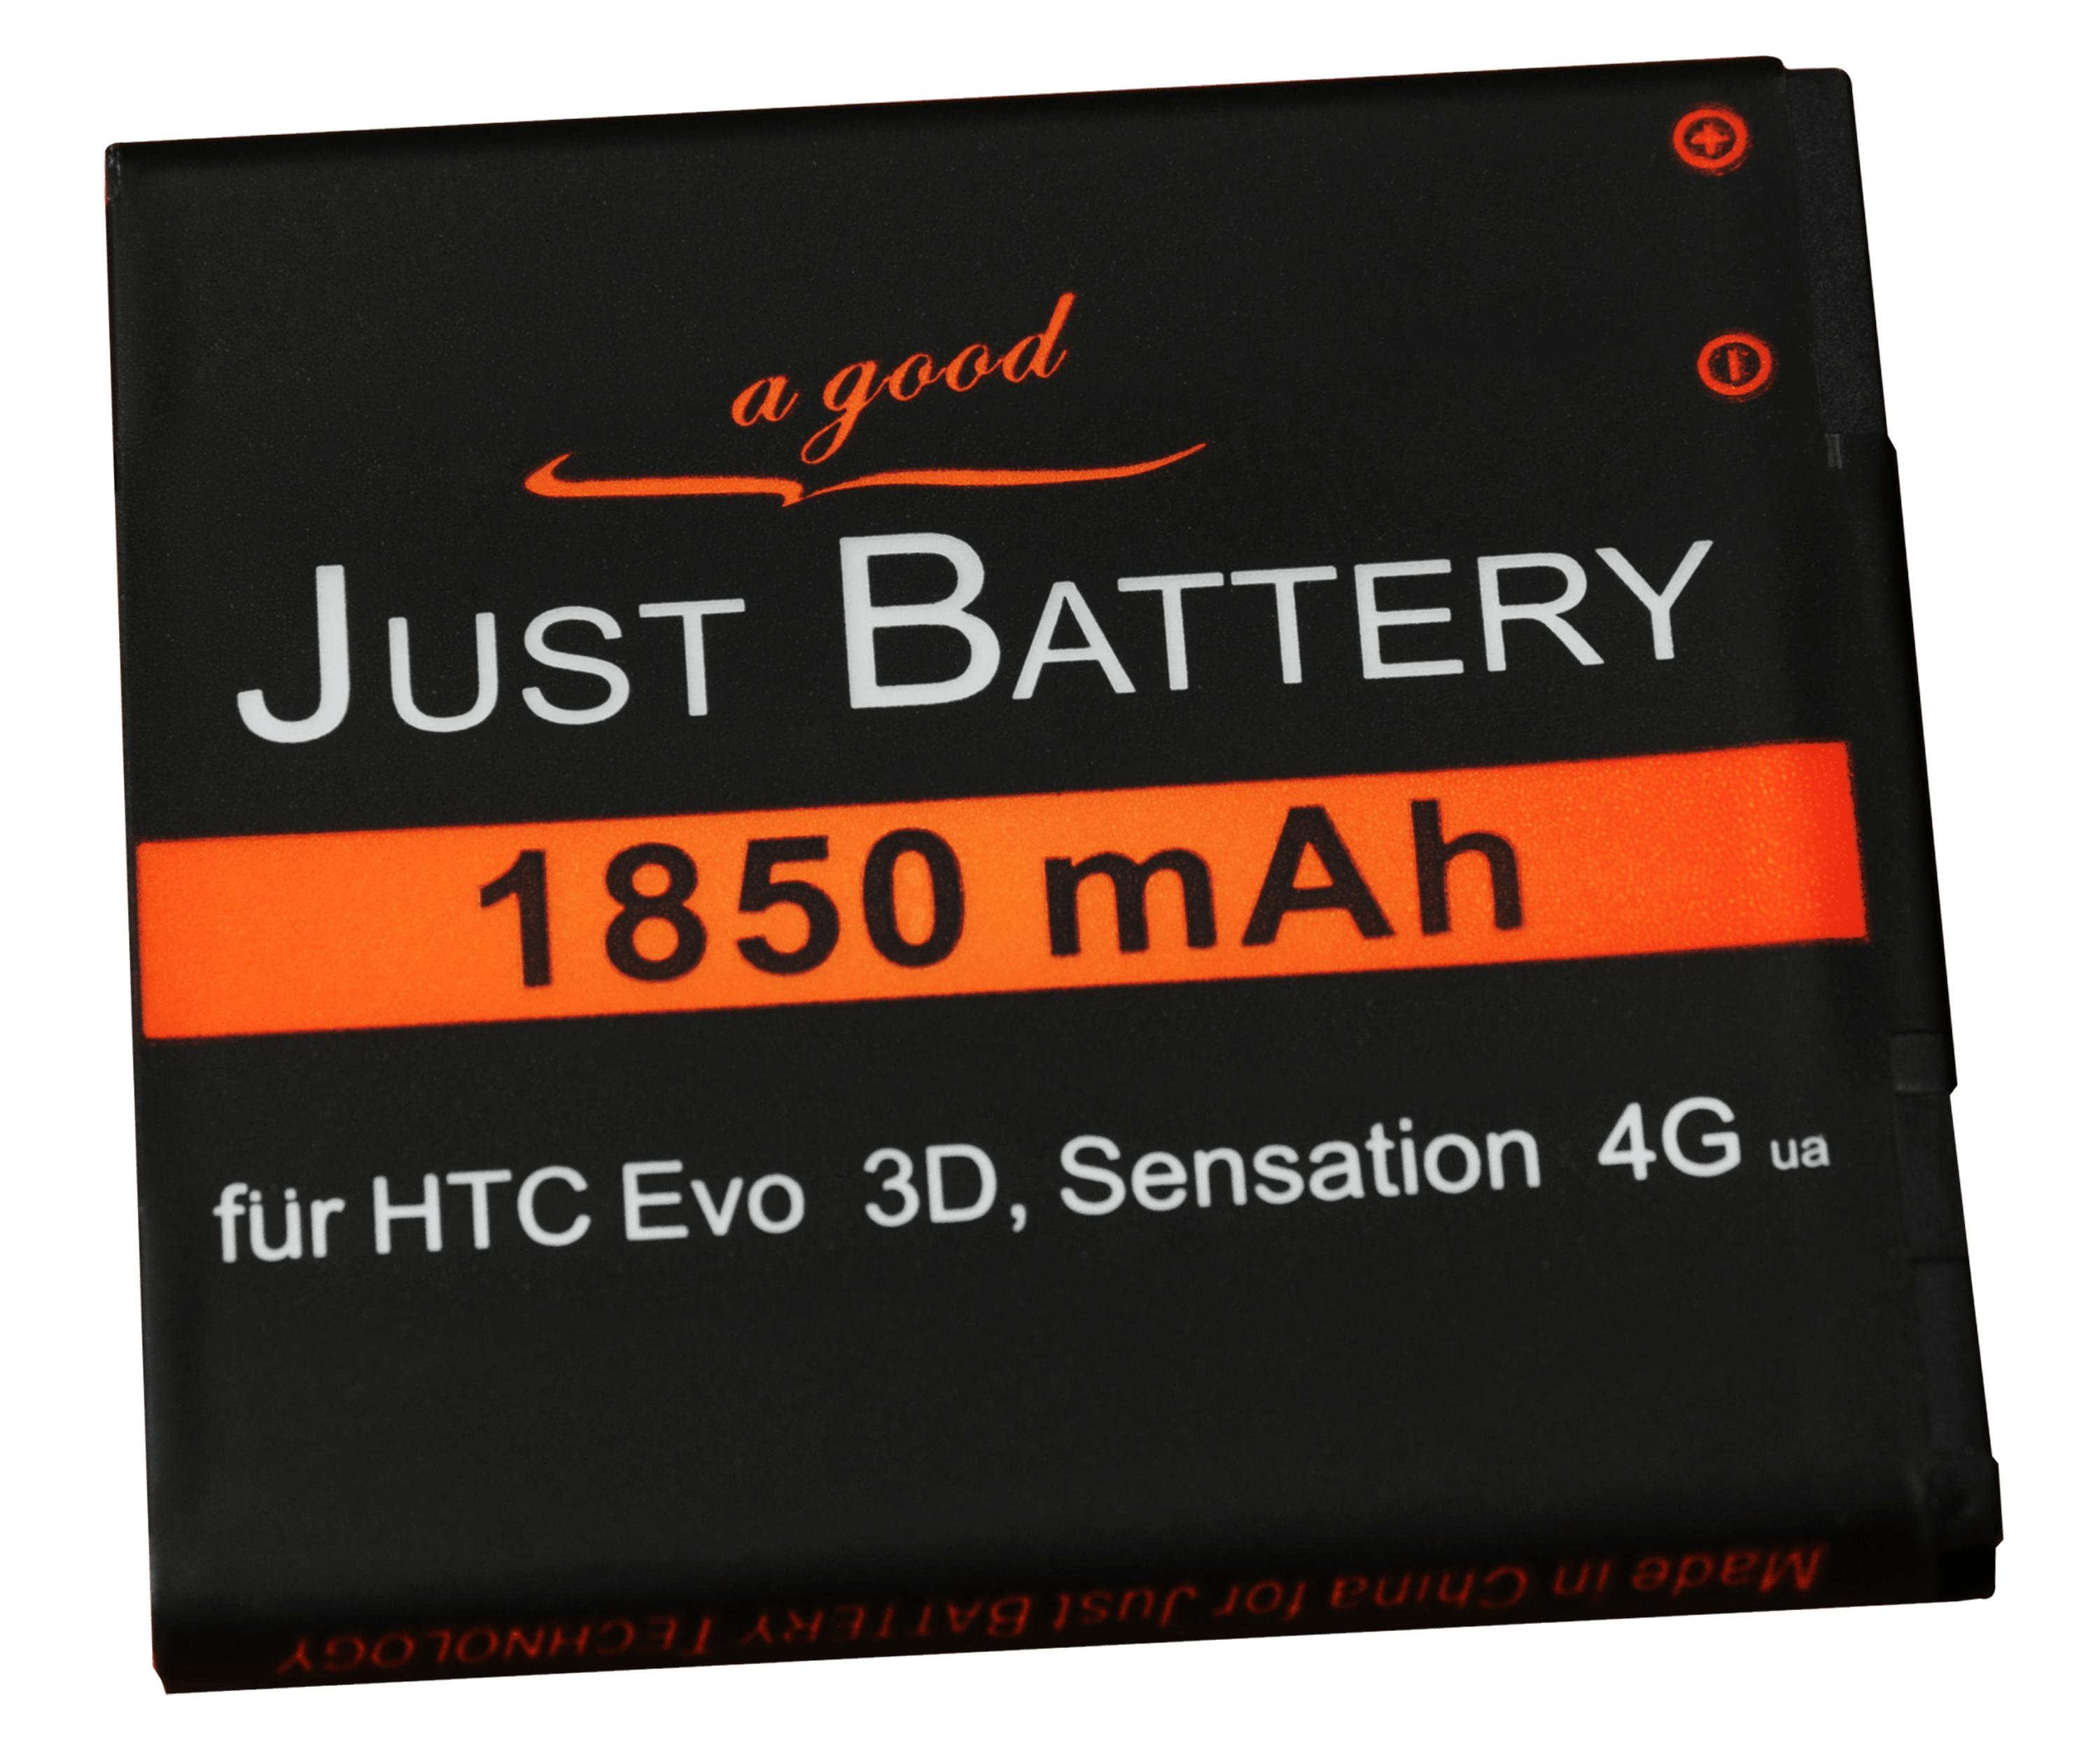 Battery for HTC Evo 3D and others